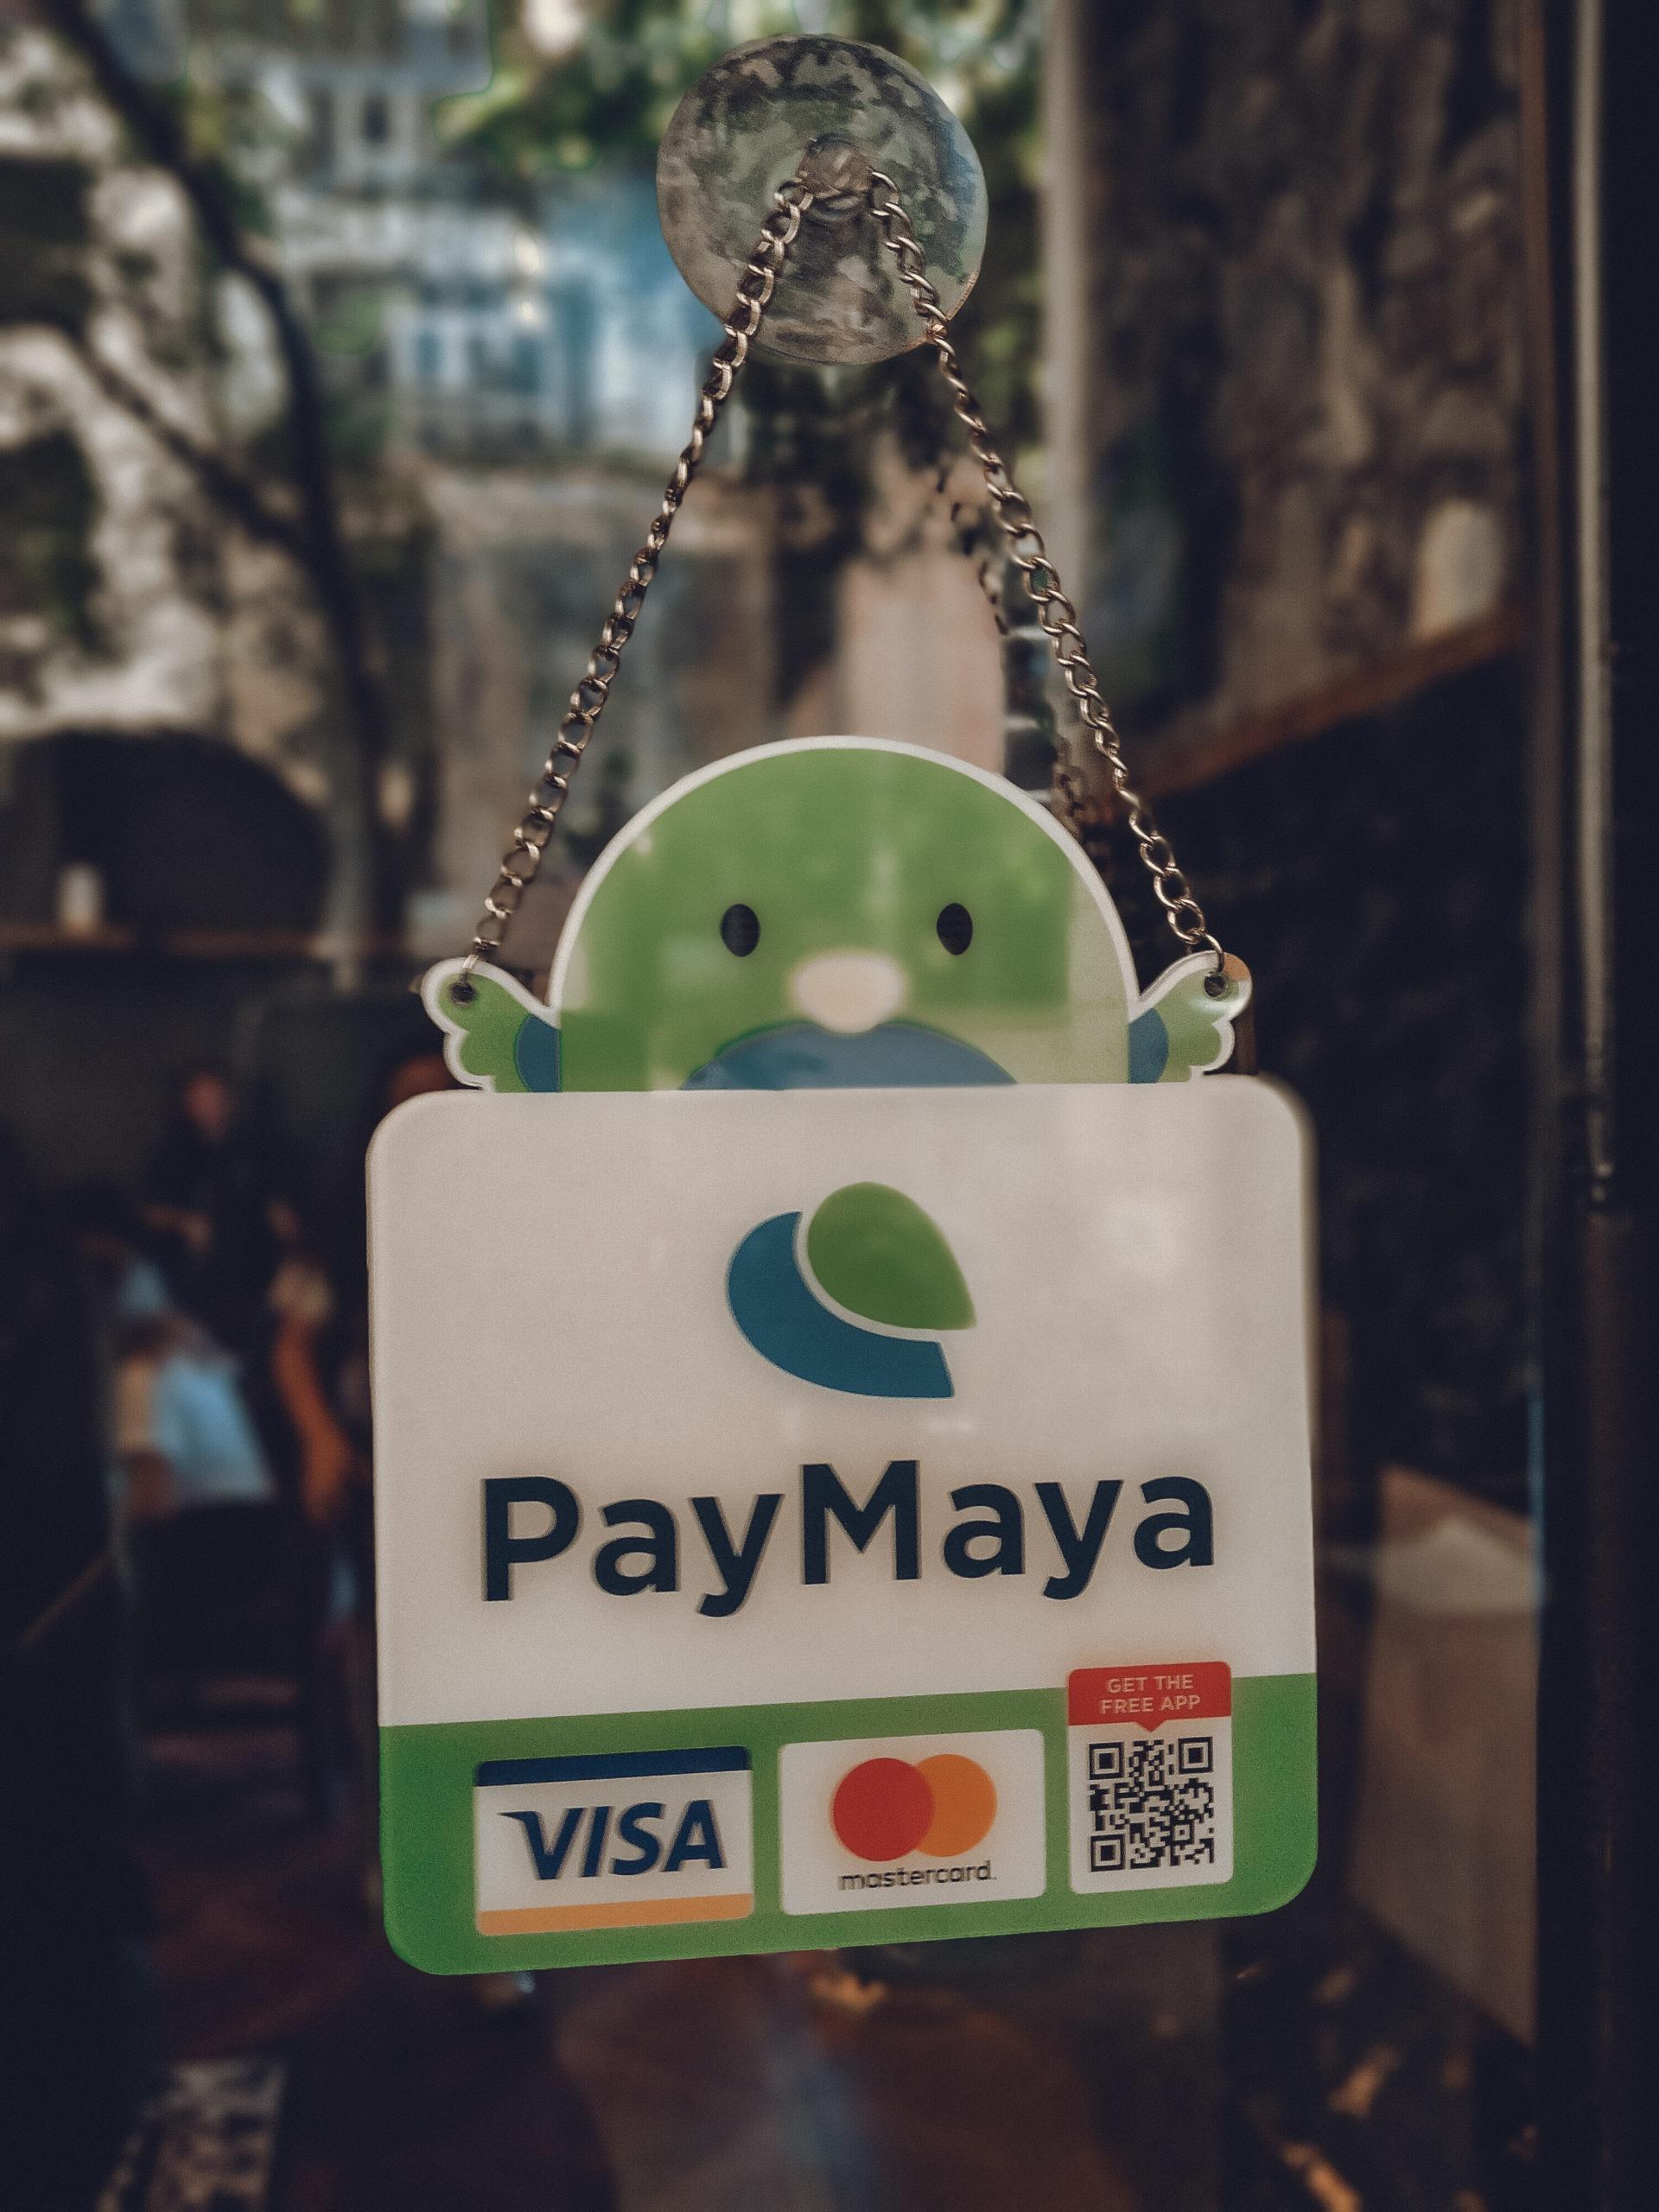 Use Your Paymaya Qr At Paymaya Preferred Partners And Get Better Than Cash Rewards This Holiday Season Enzo Luna